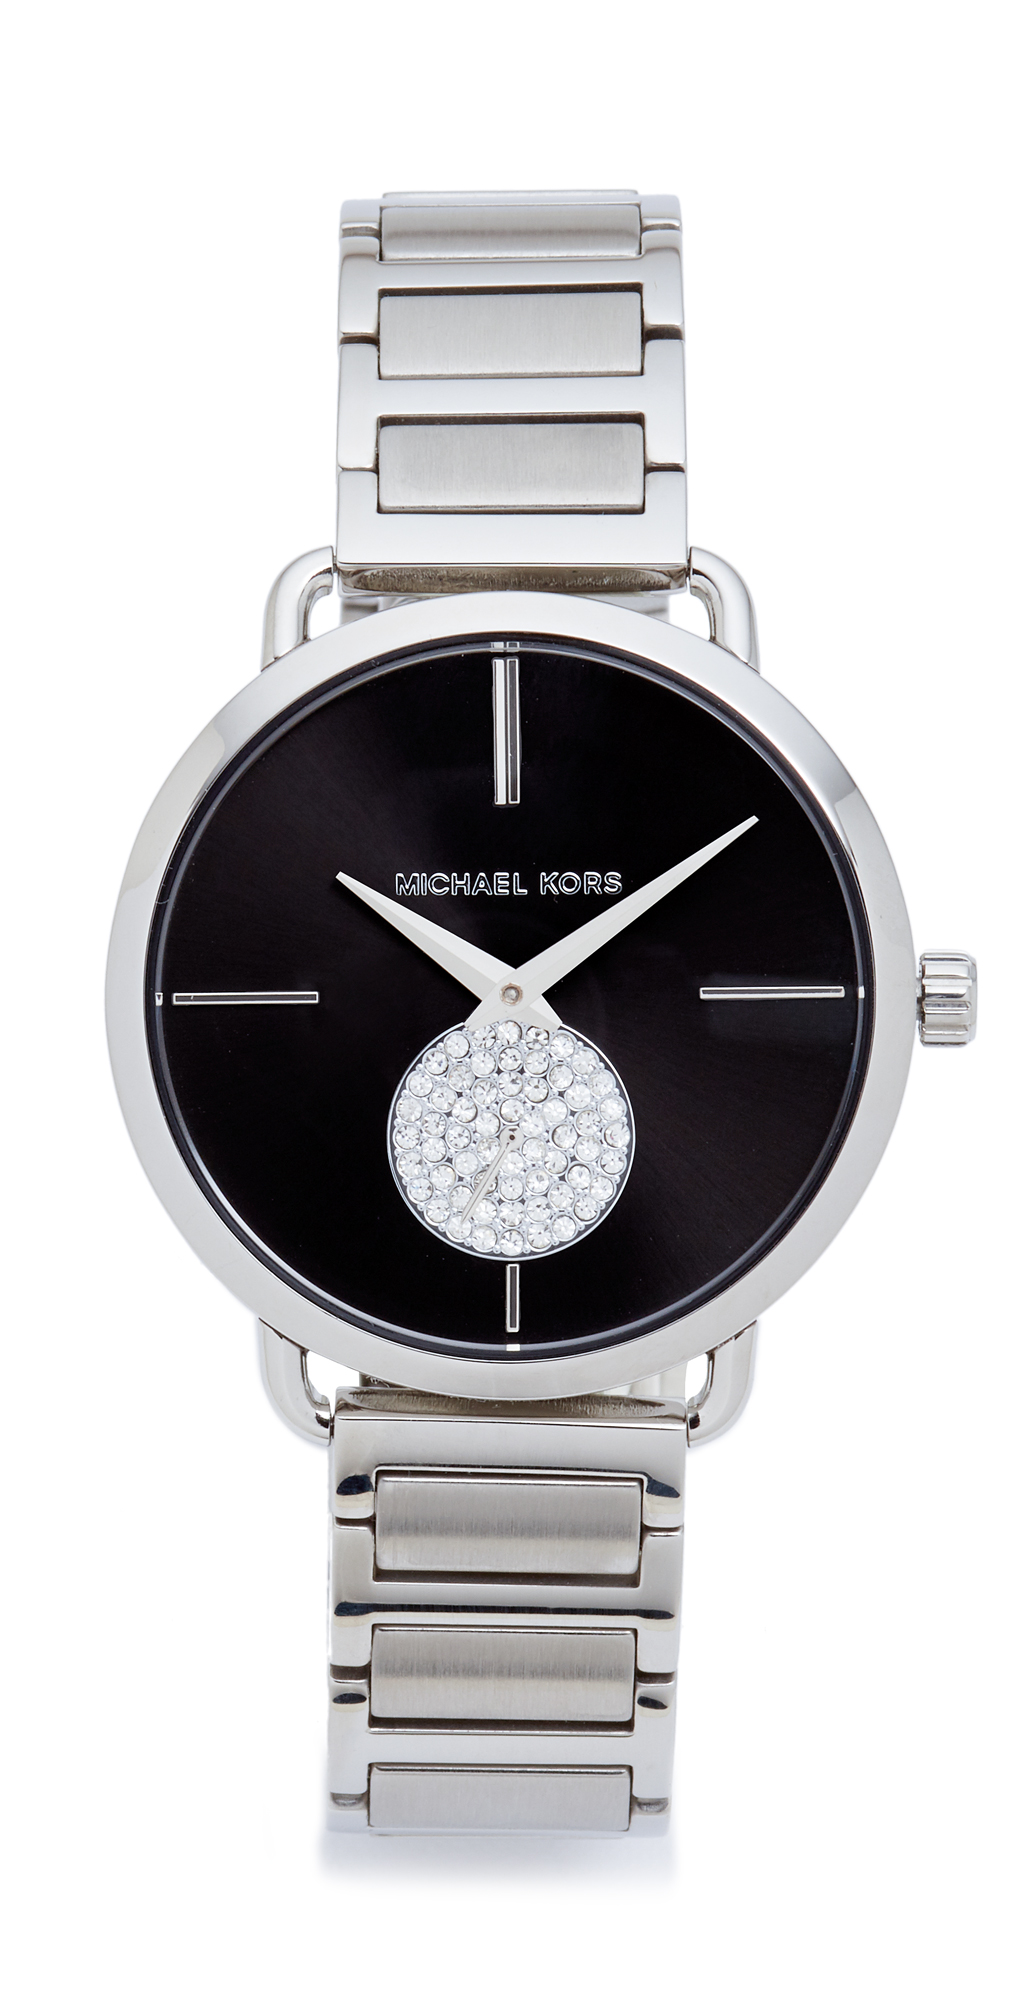 Partia Watch Michael Kors